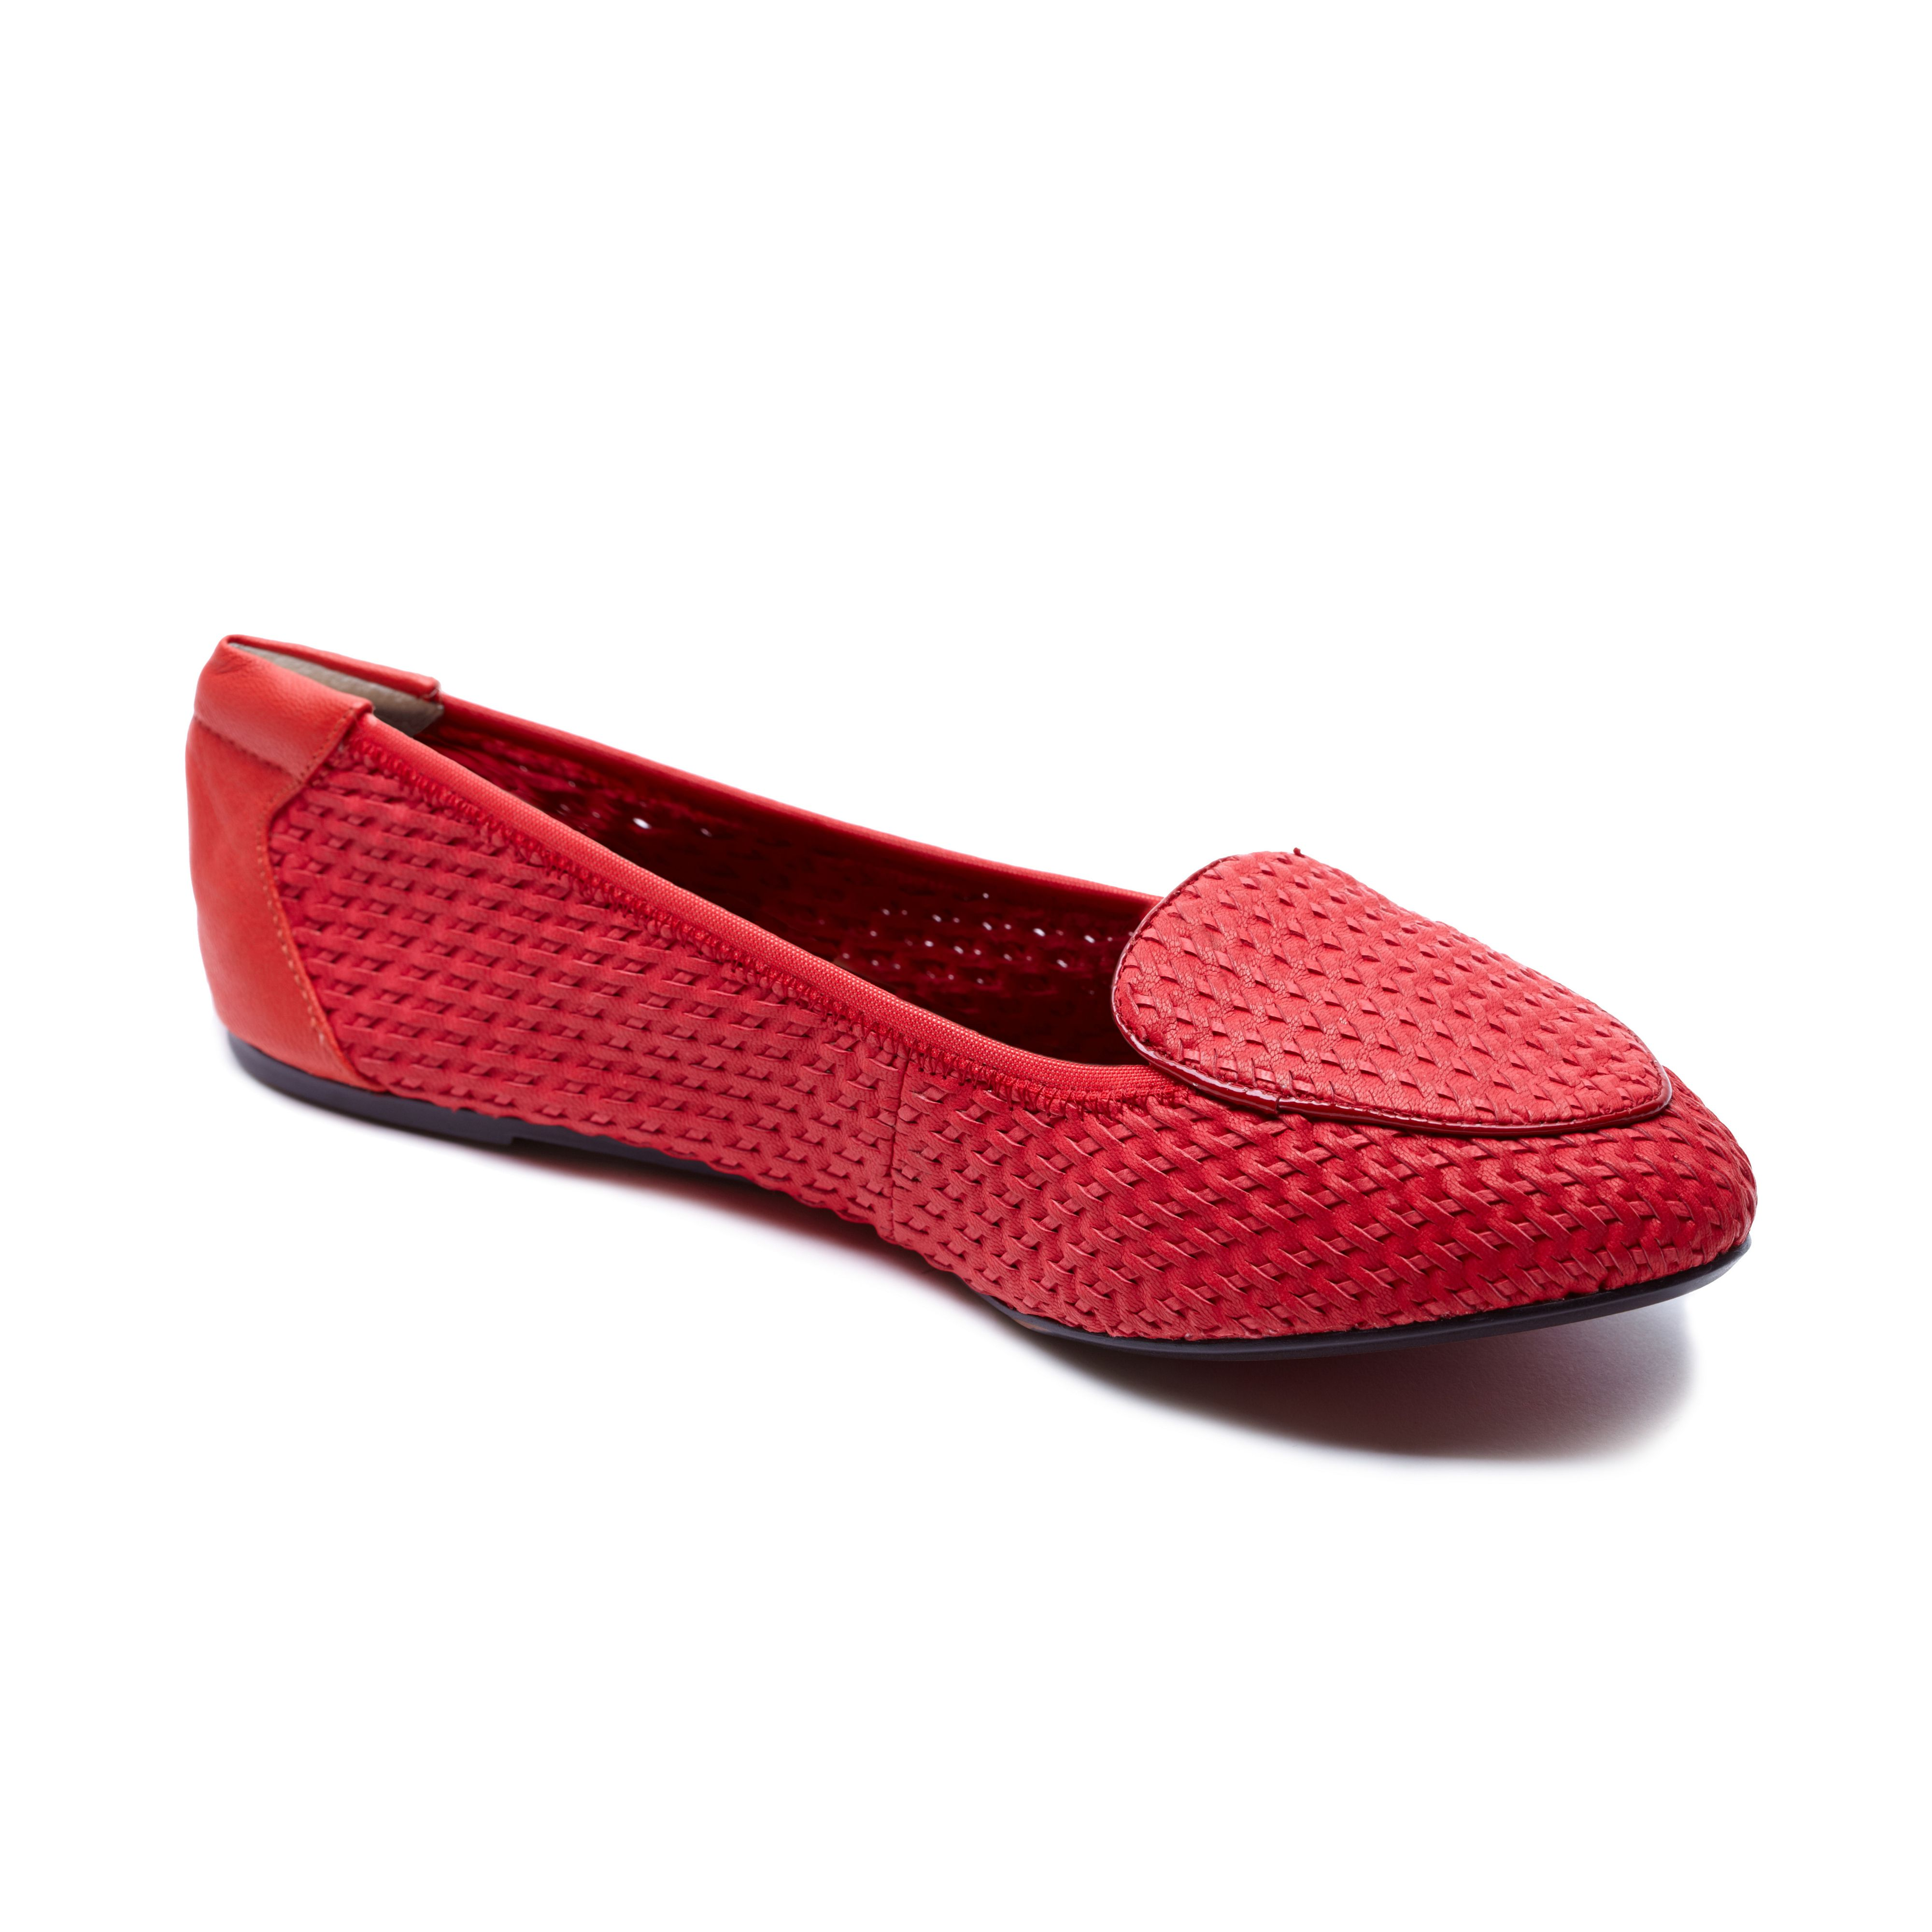 Clapham coral woven leather foldable loafer